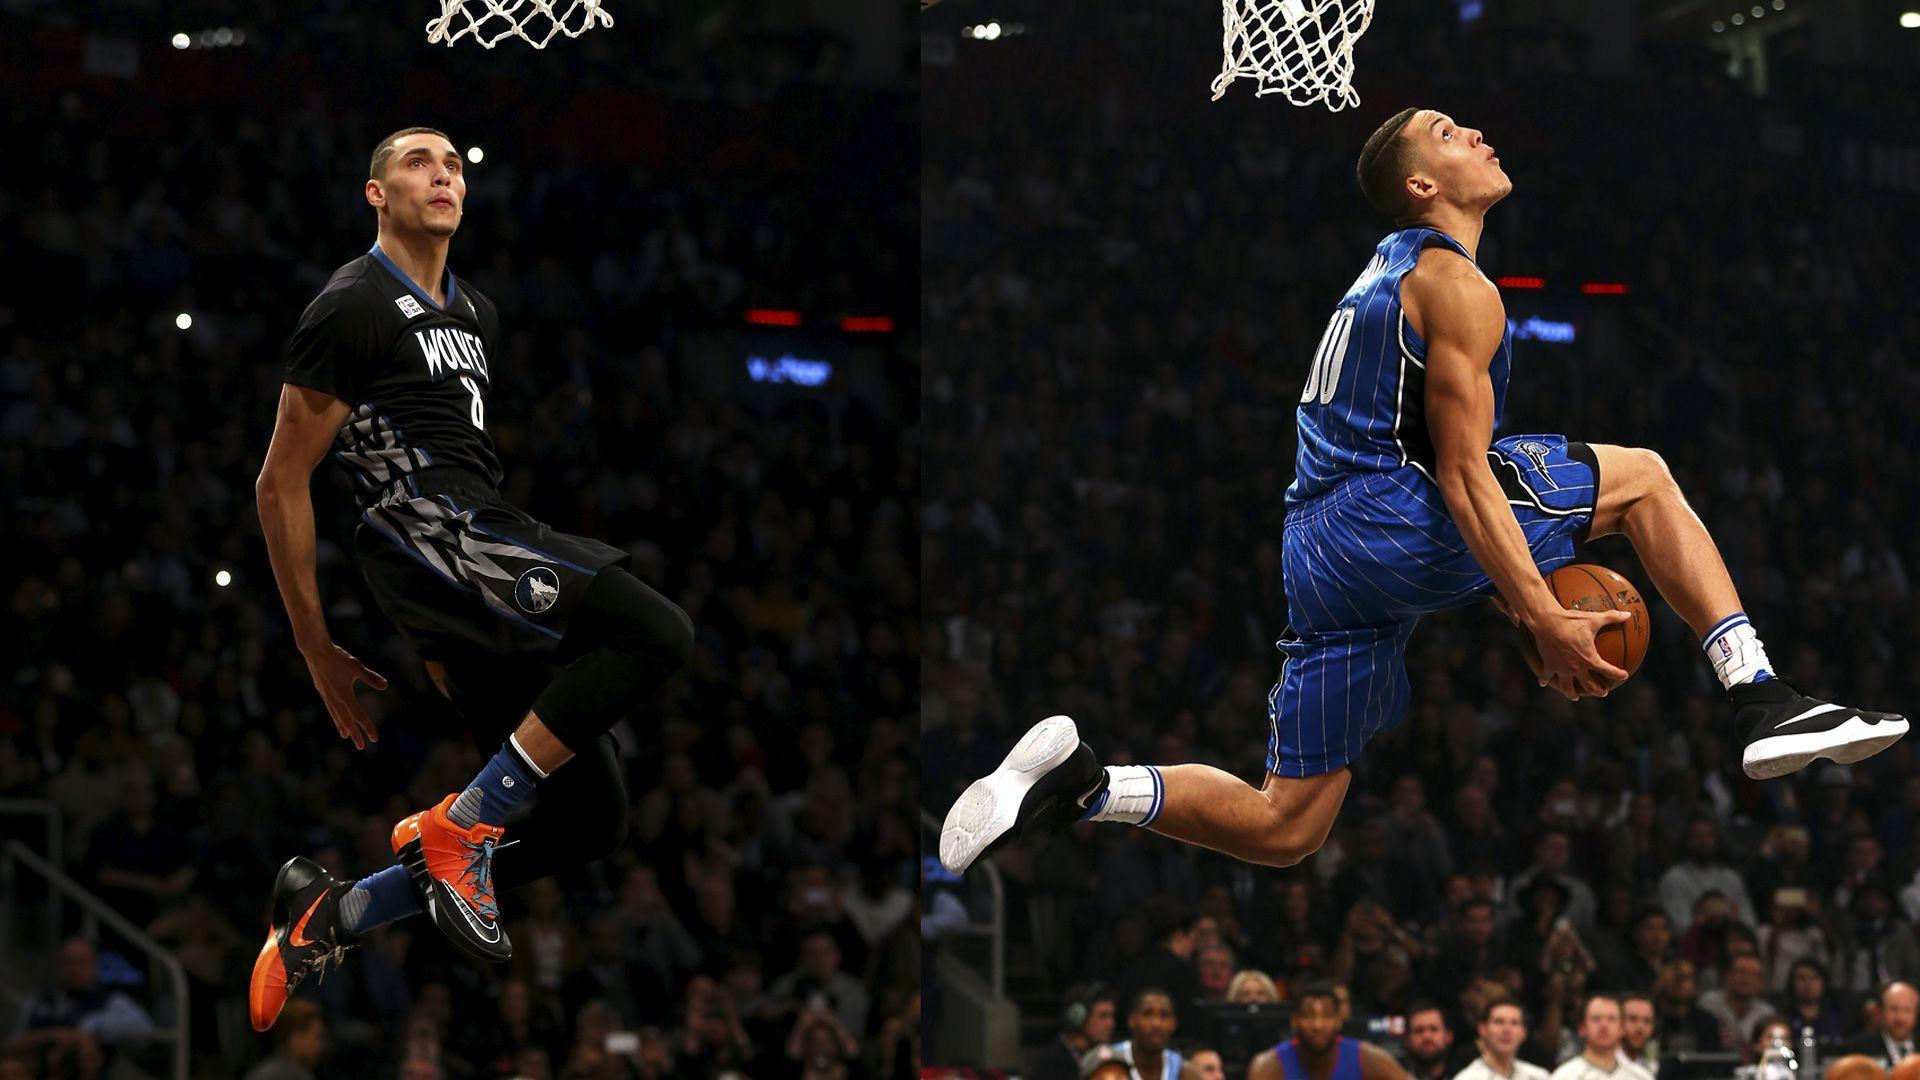 NBA players disagree with Slam Dunk champion selection